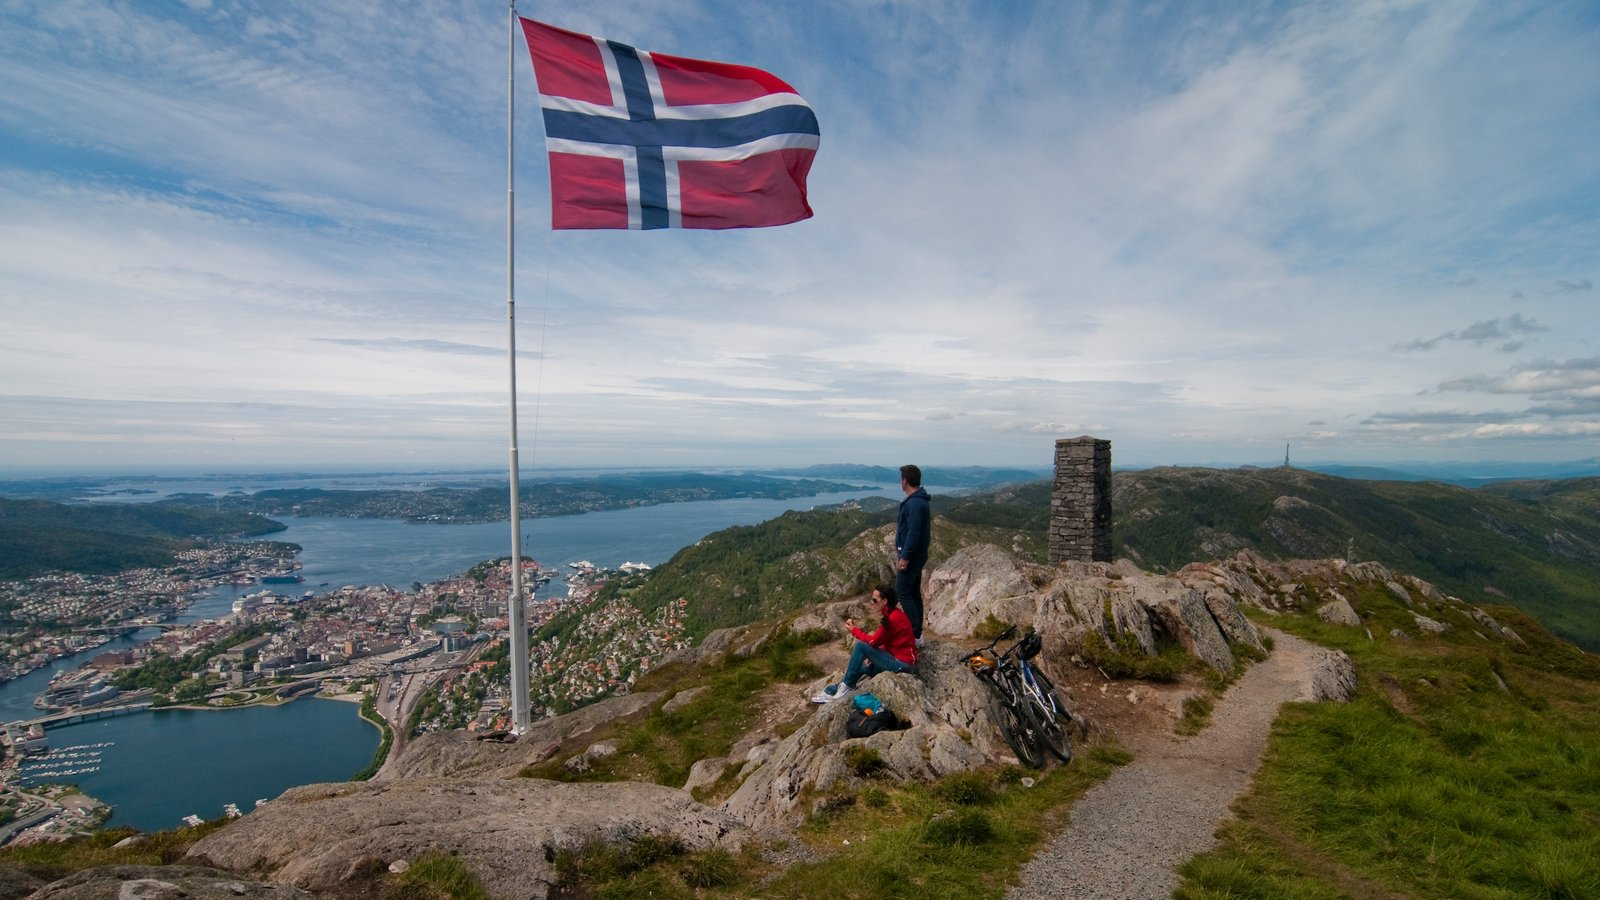 Bergen featuring mountains, general coastal views and hiking or walking